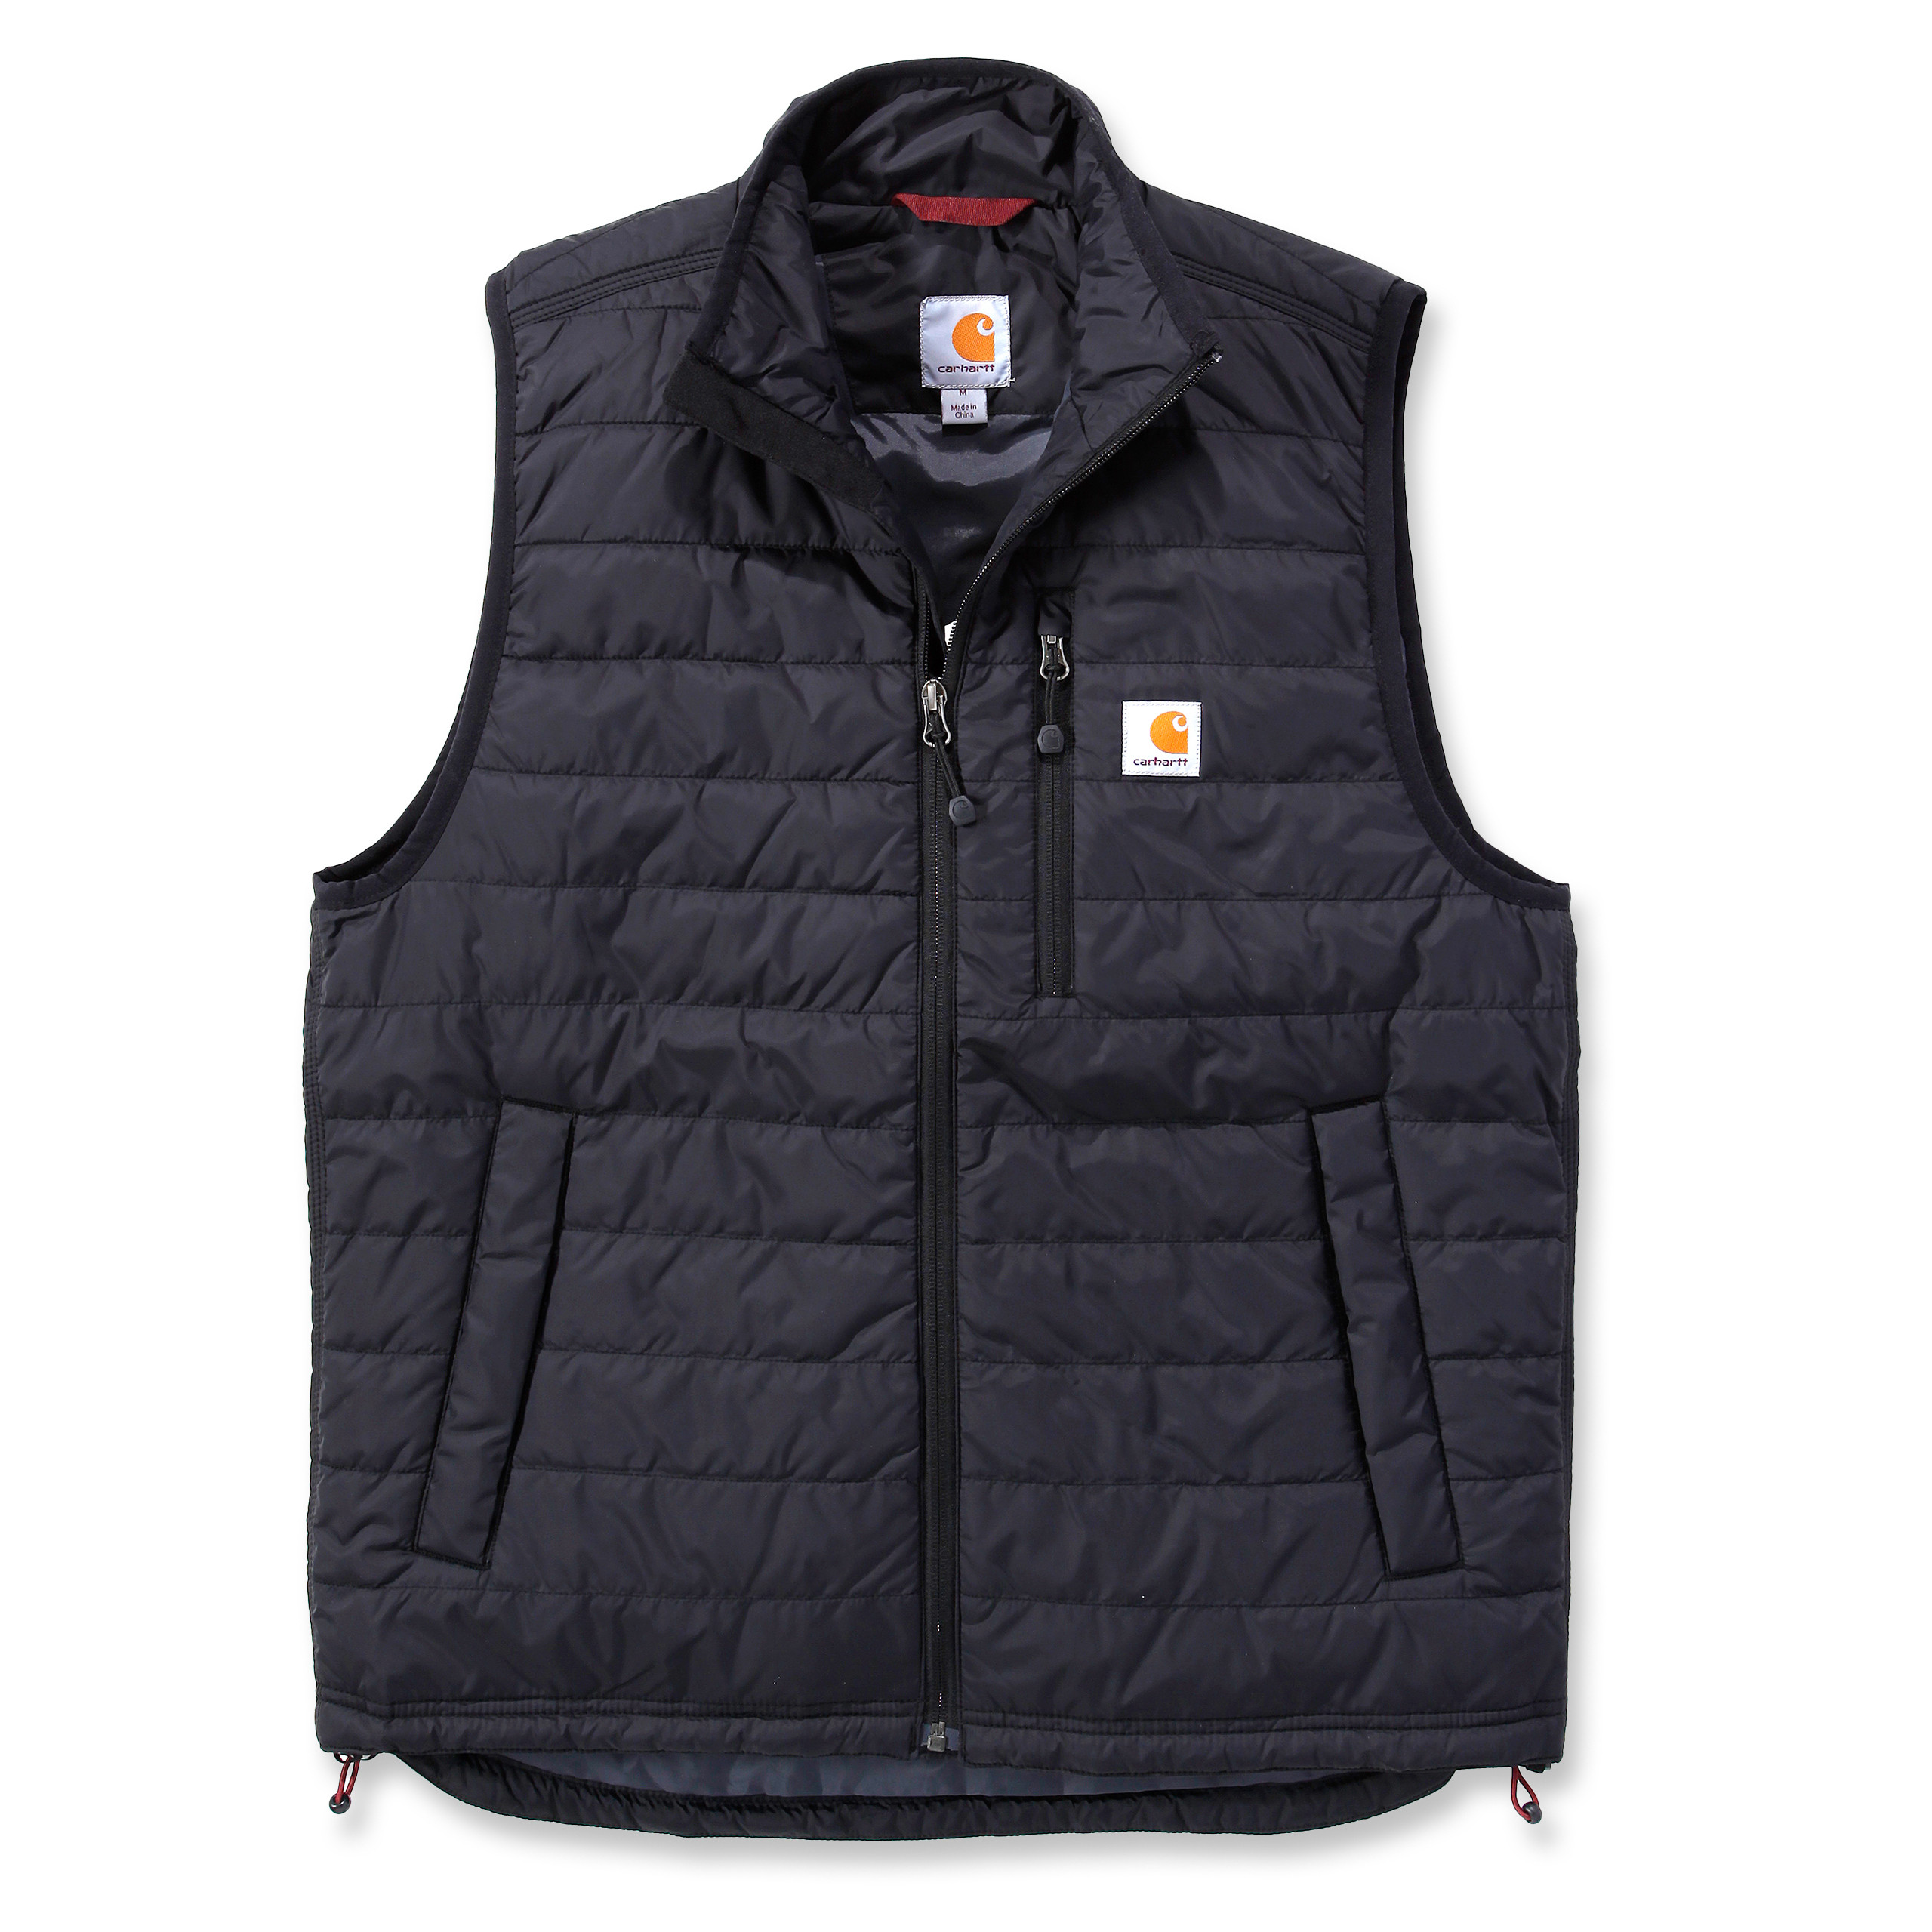 Жилет Carhartt Gilliam Vest - 102286 (Black, S)